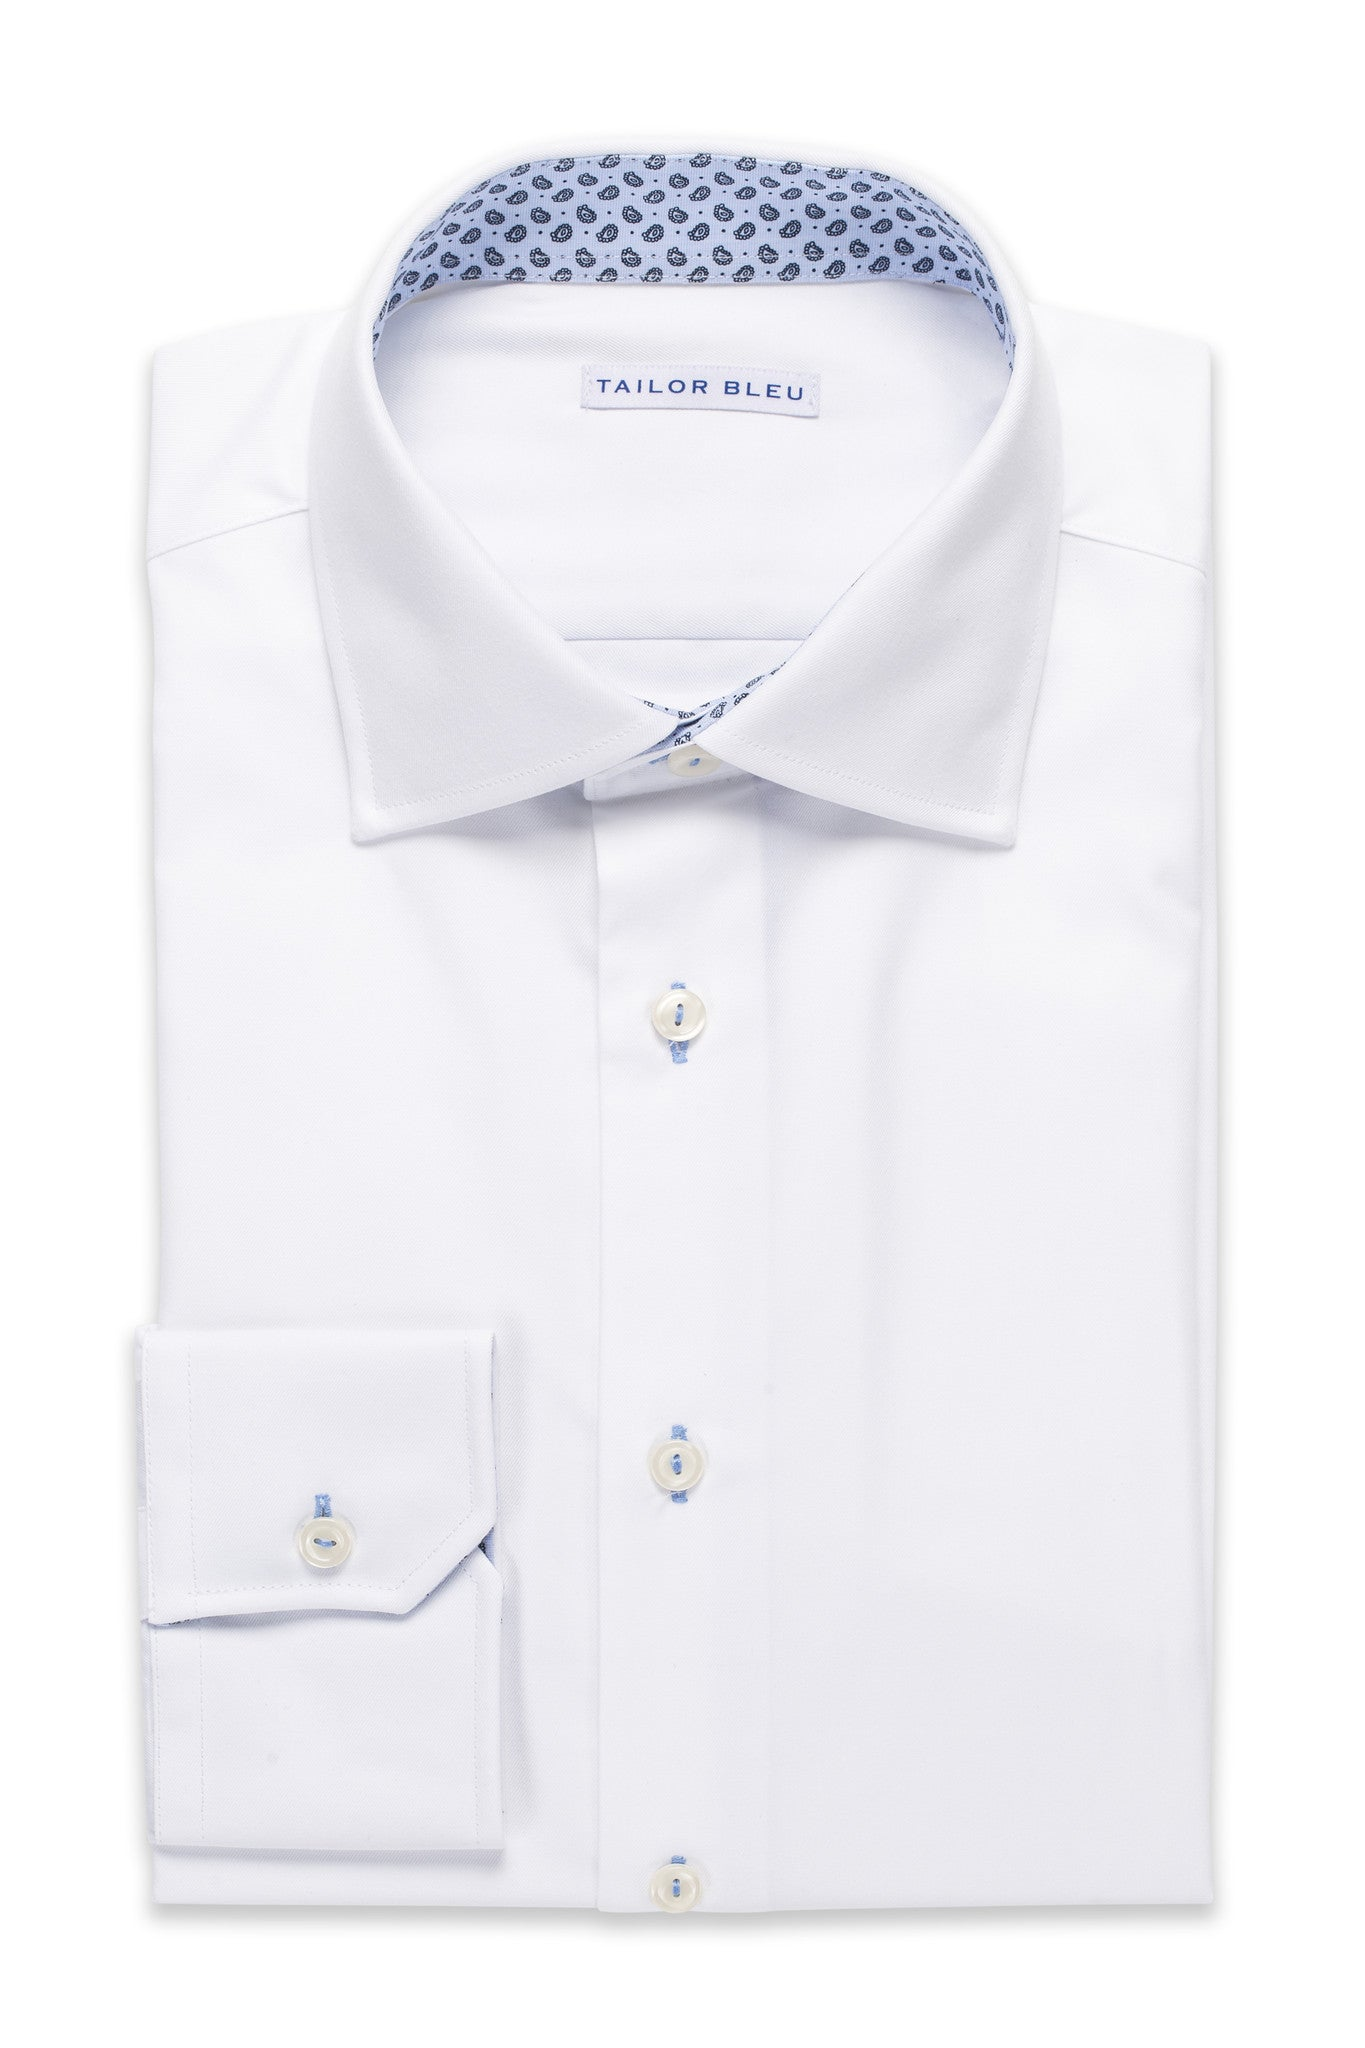 White Twill Shirt - Round Spread Collar